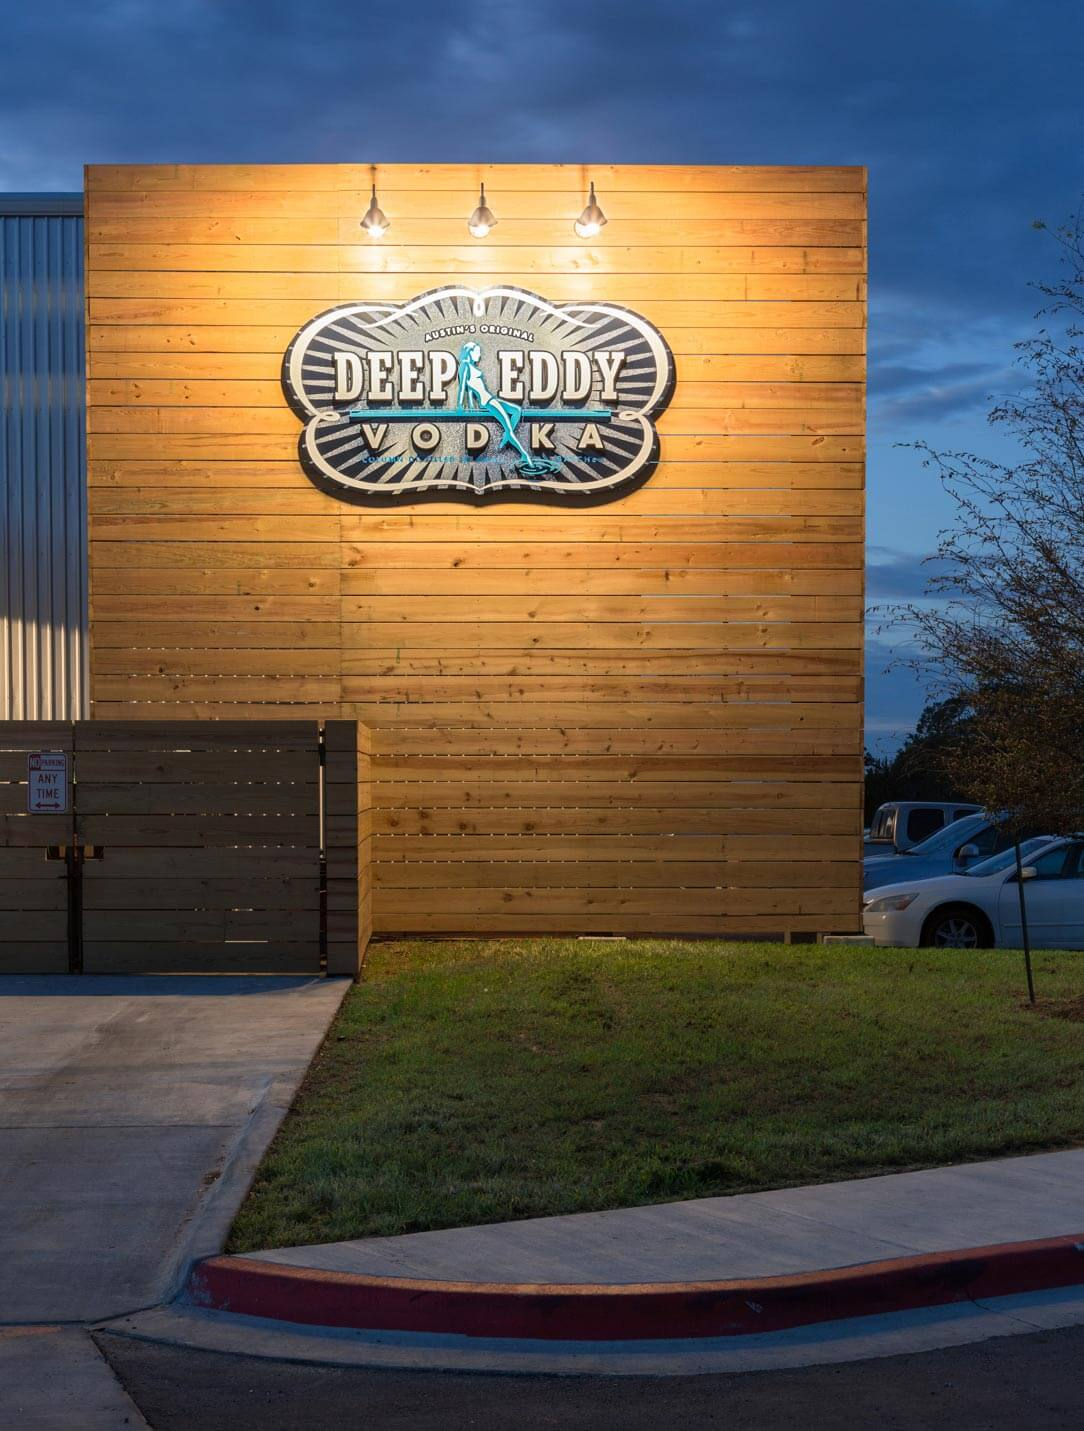 Deep Eddy Vodka Tasting Room Outside Signage